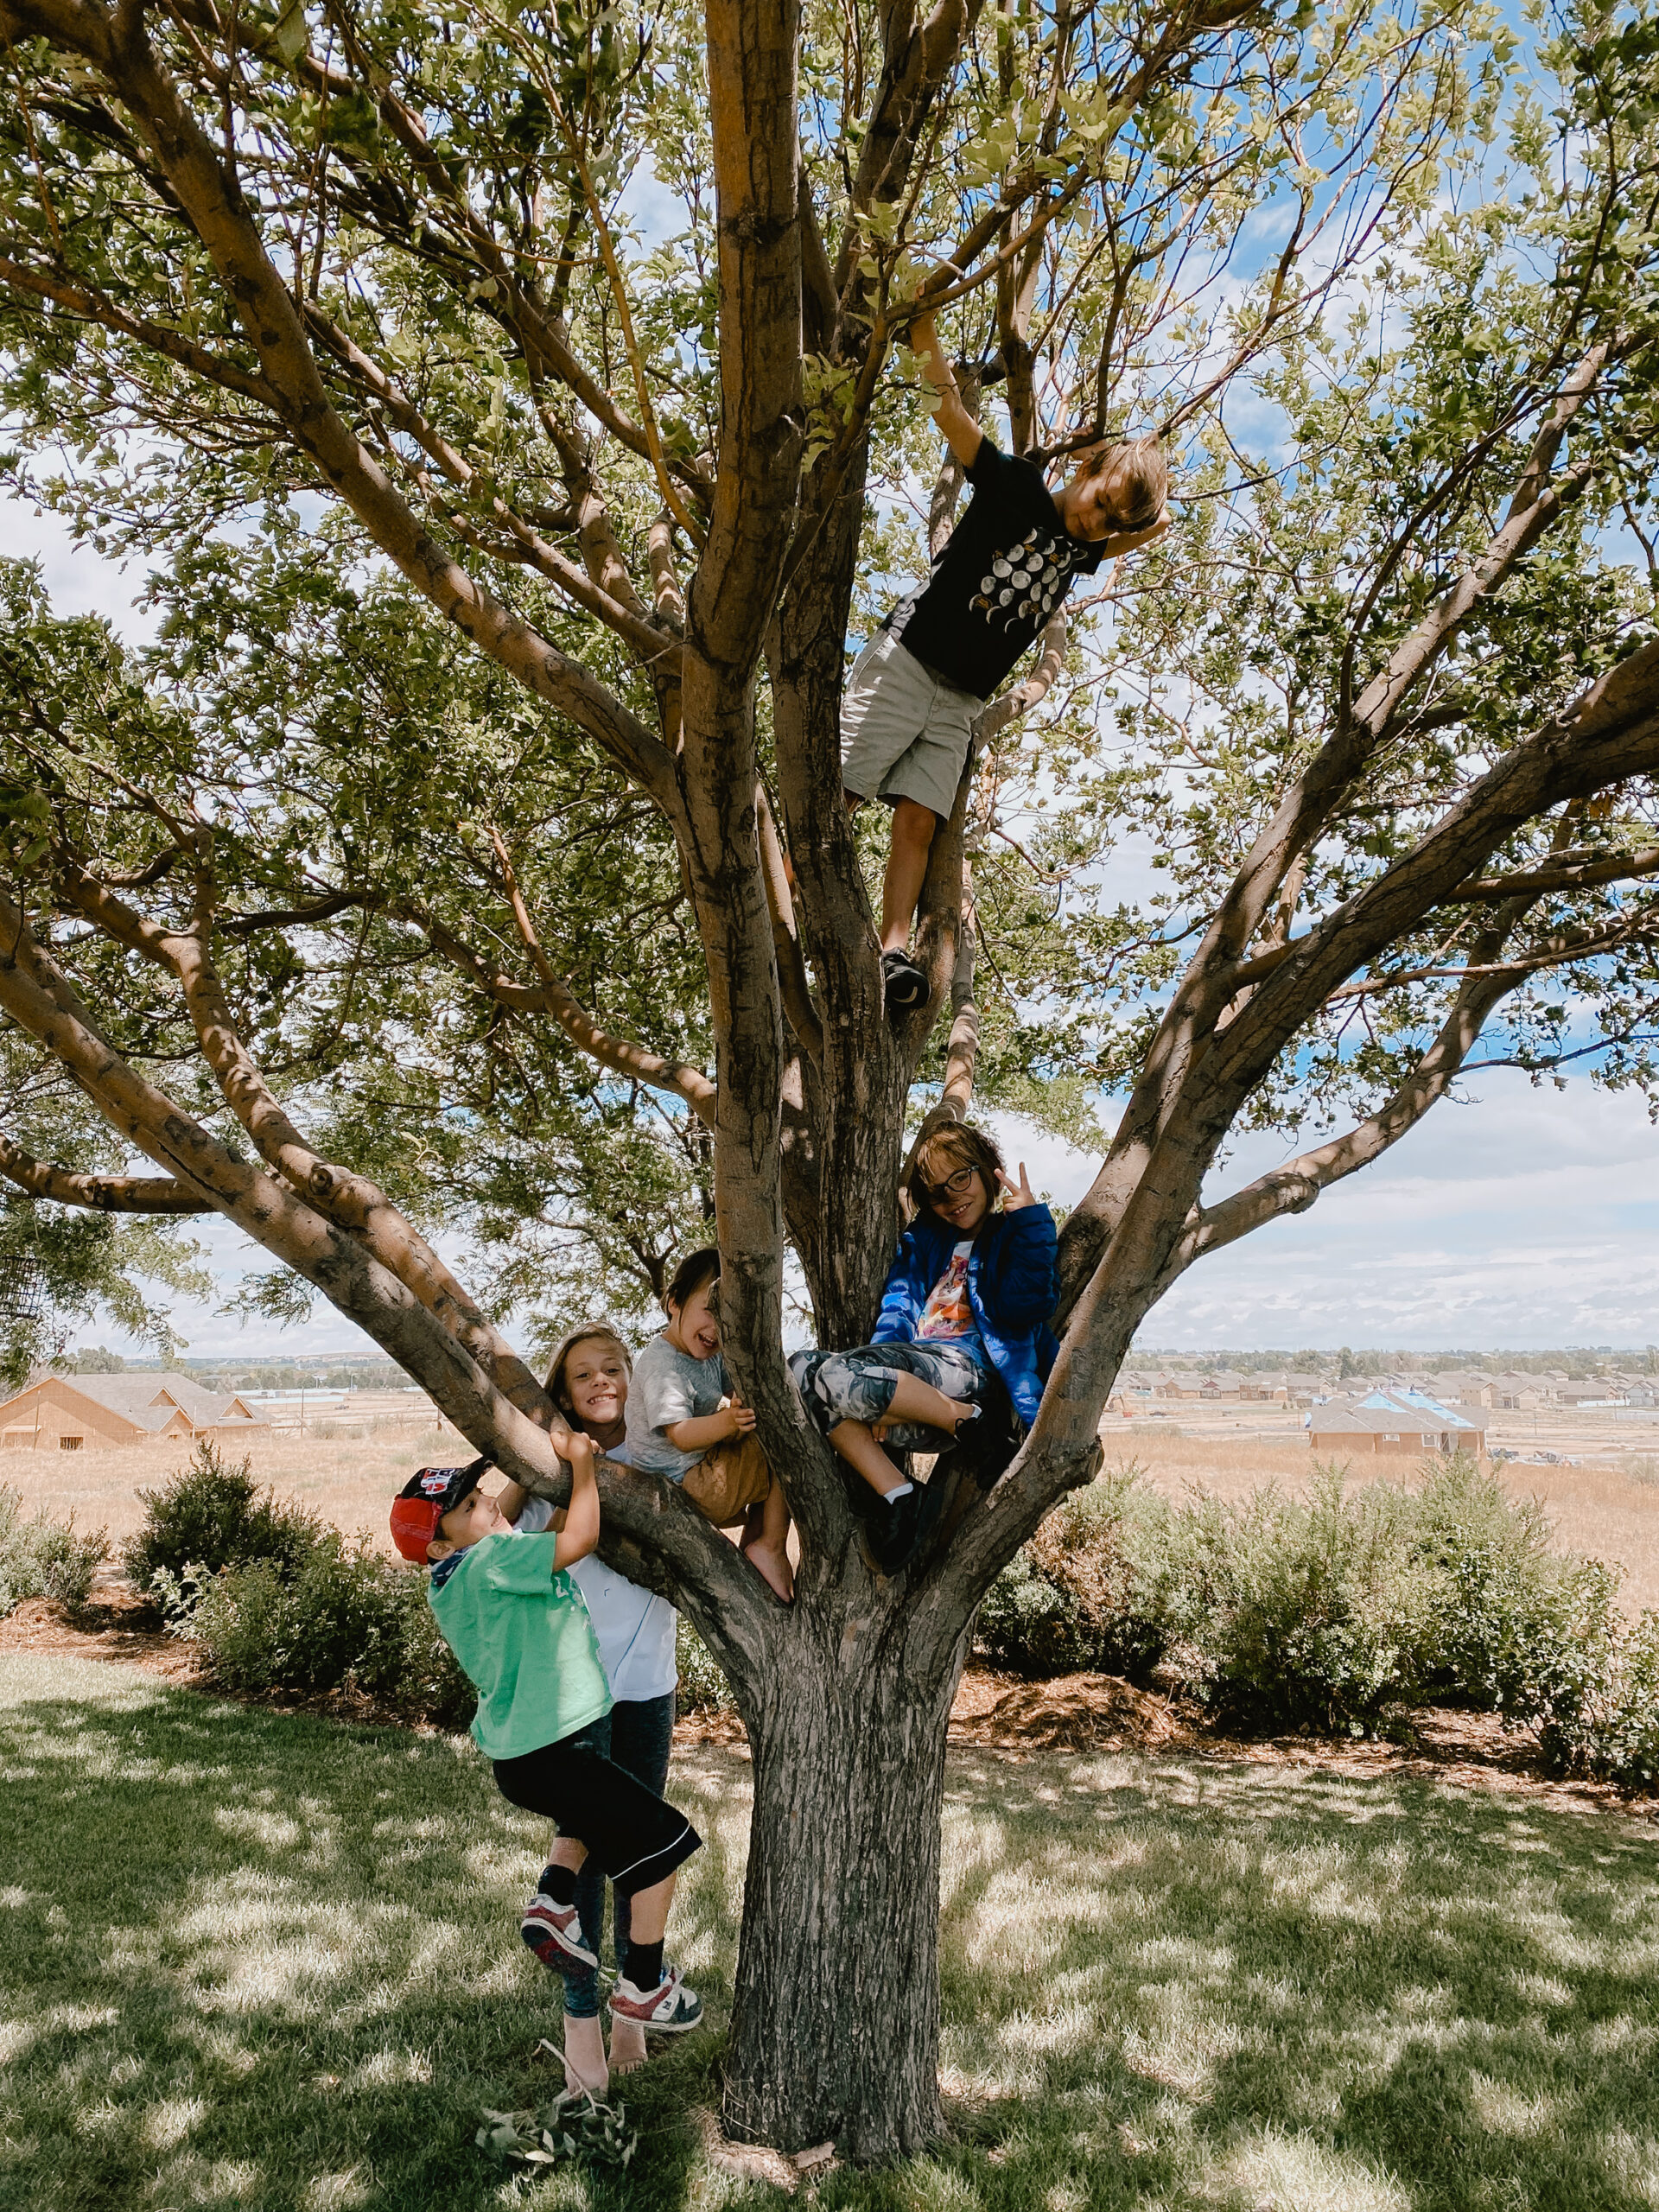 cousins in the tree. #treecliming #cousins #childsplay